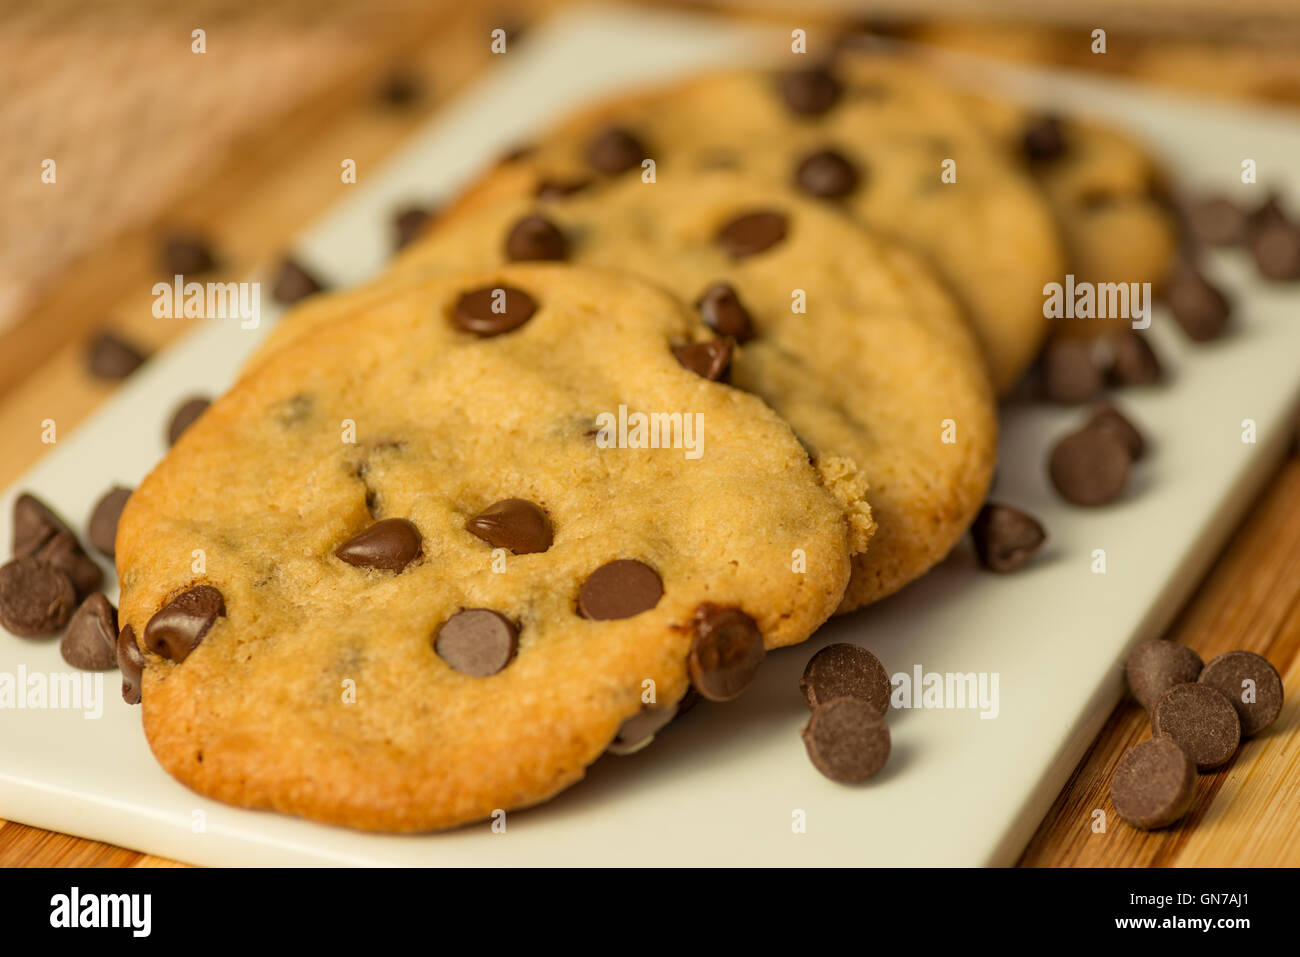 Vegan Chocolate Chips Cookies on a plate Stock Photo